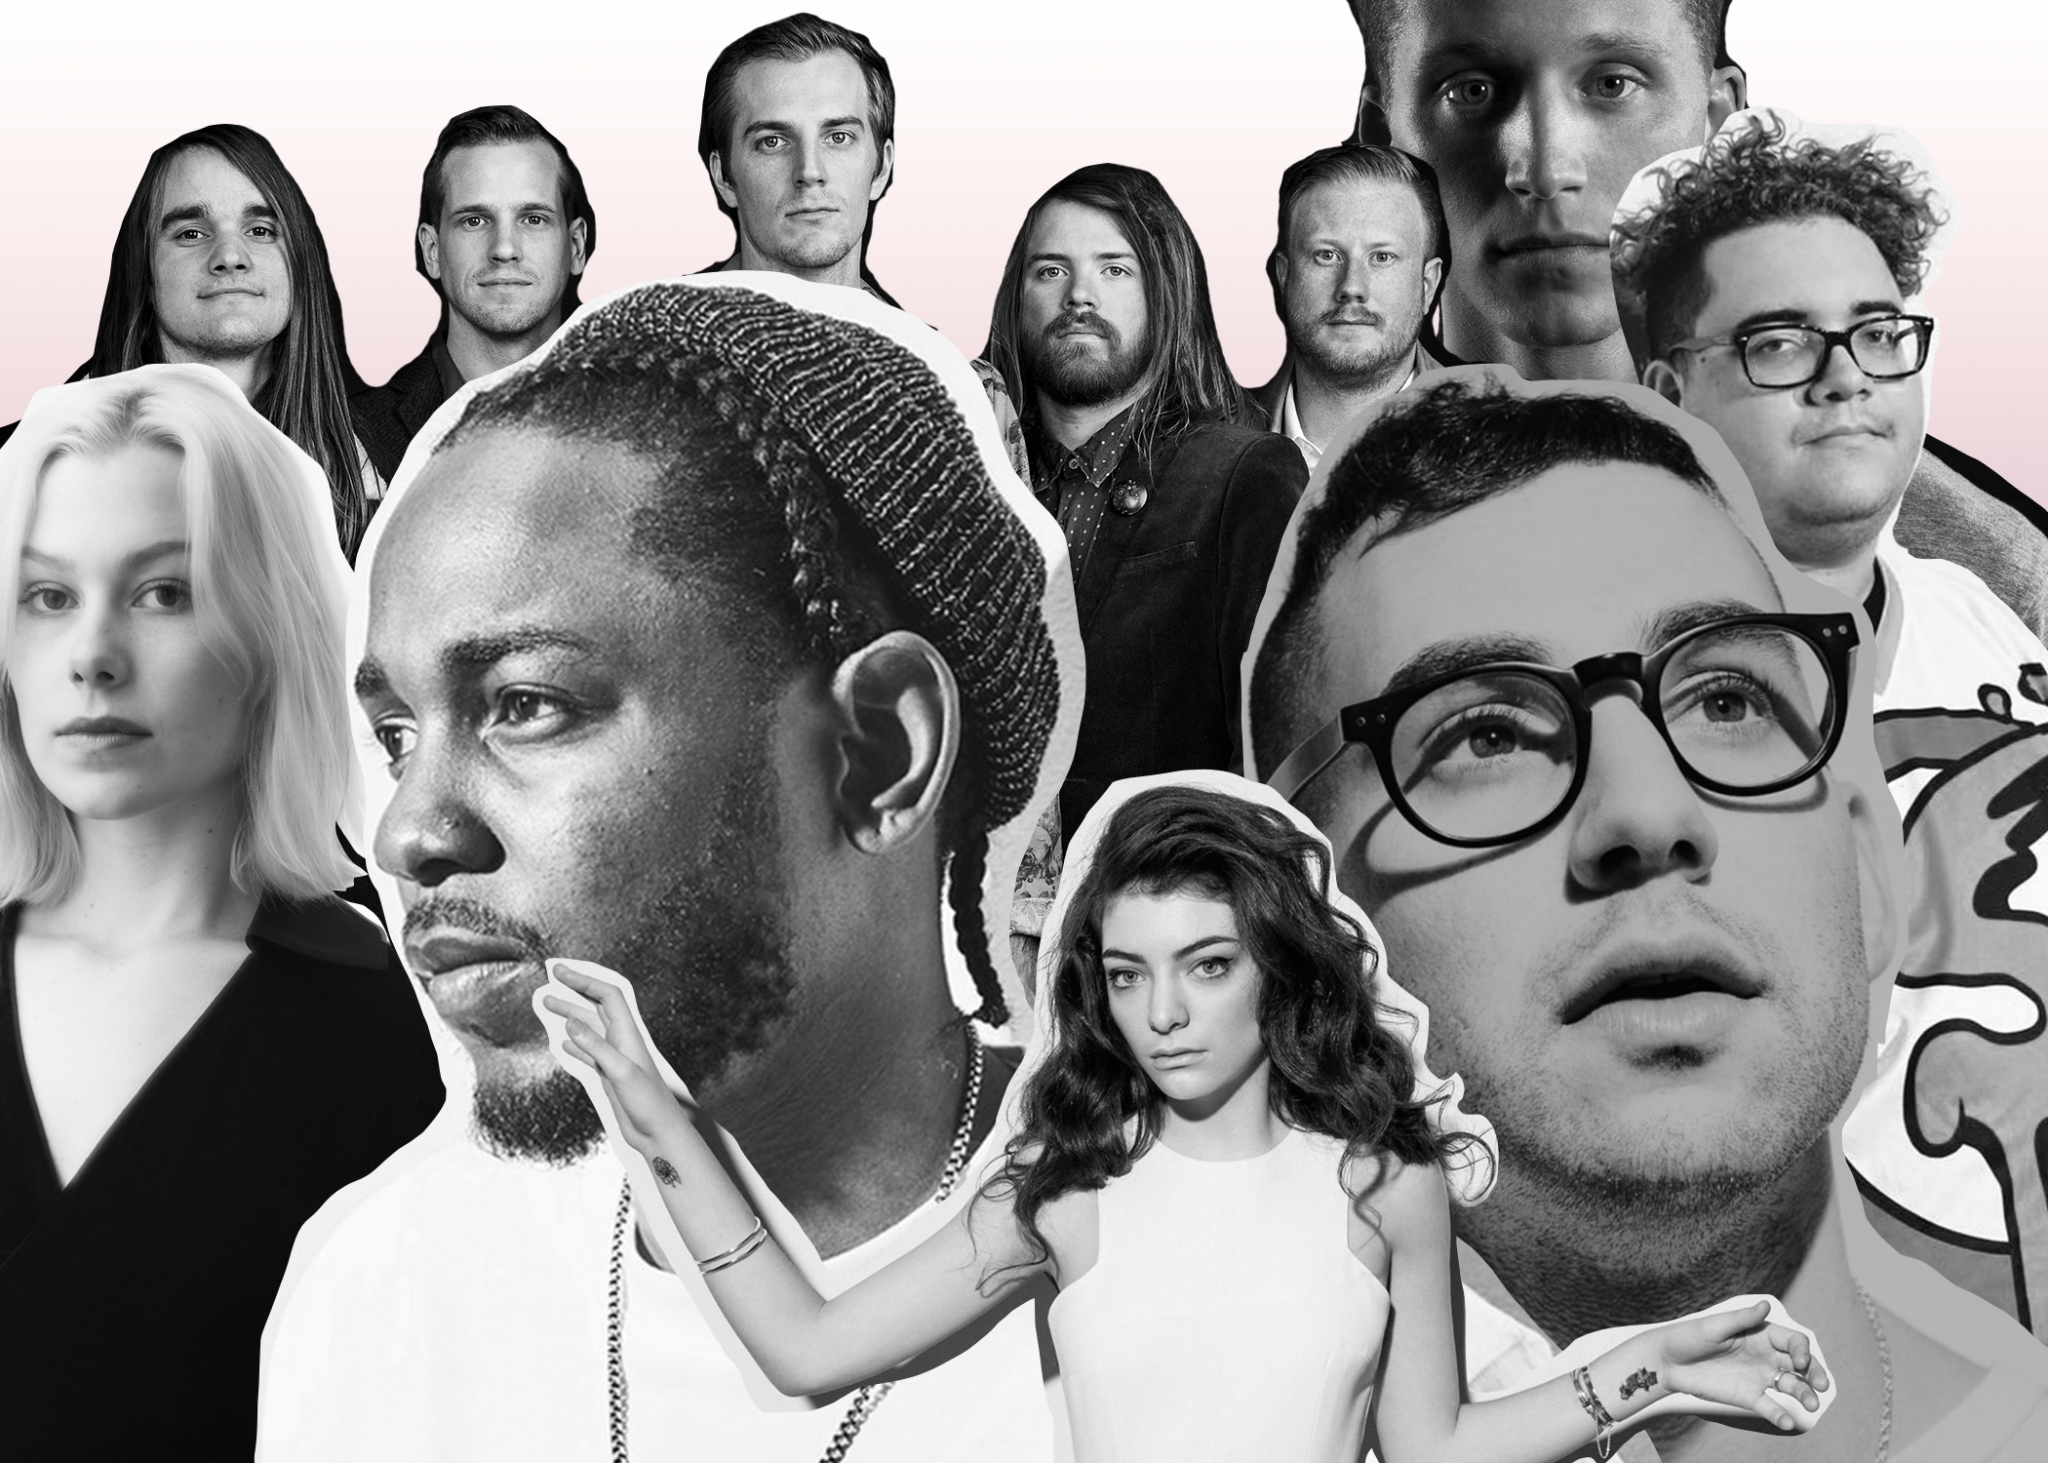 YEAR IN REVIEW: Logan White's favorite albums of 2017